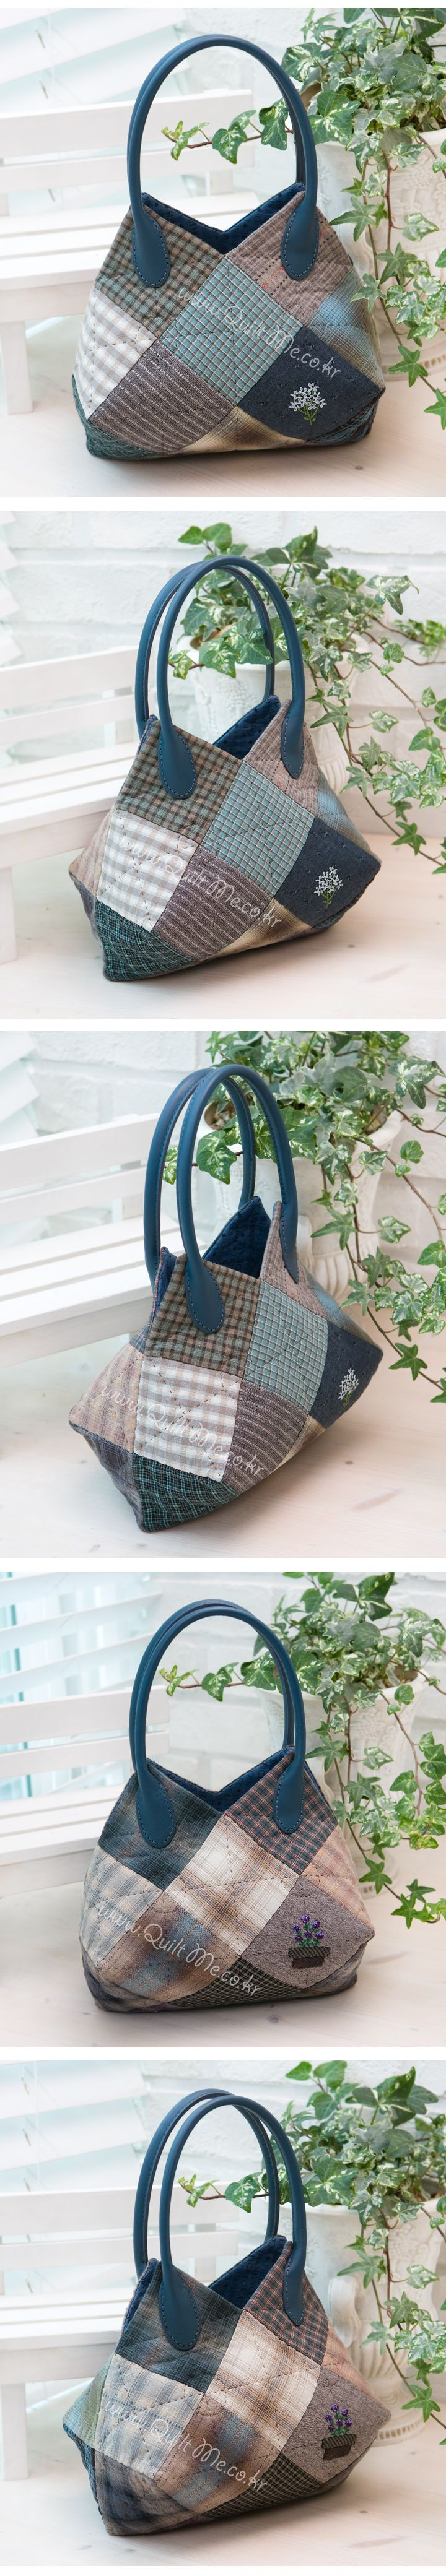 quilt bag - I love this one